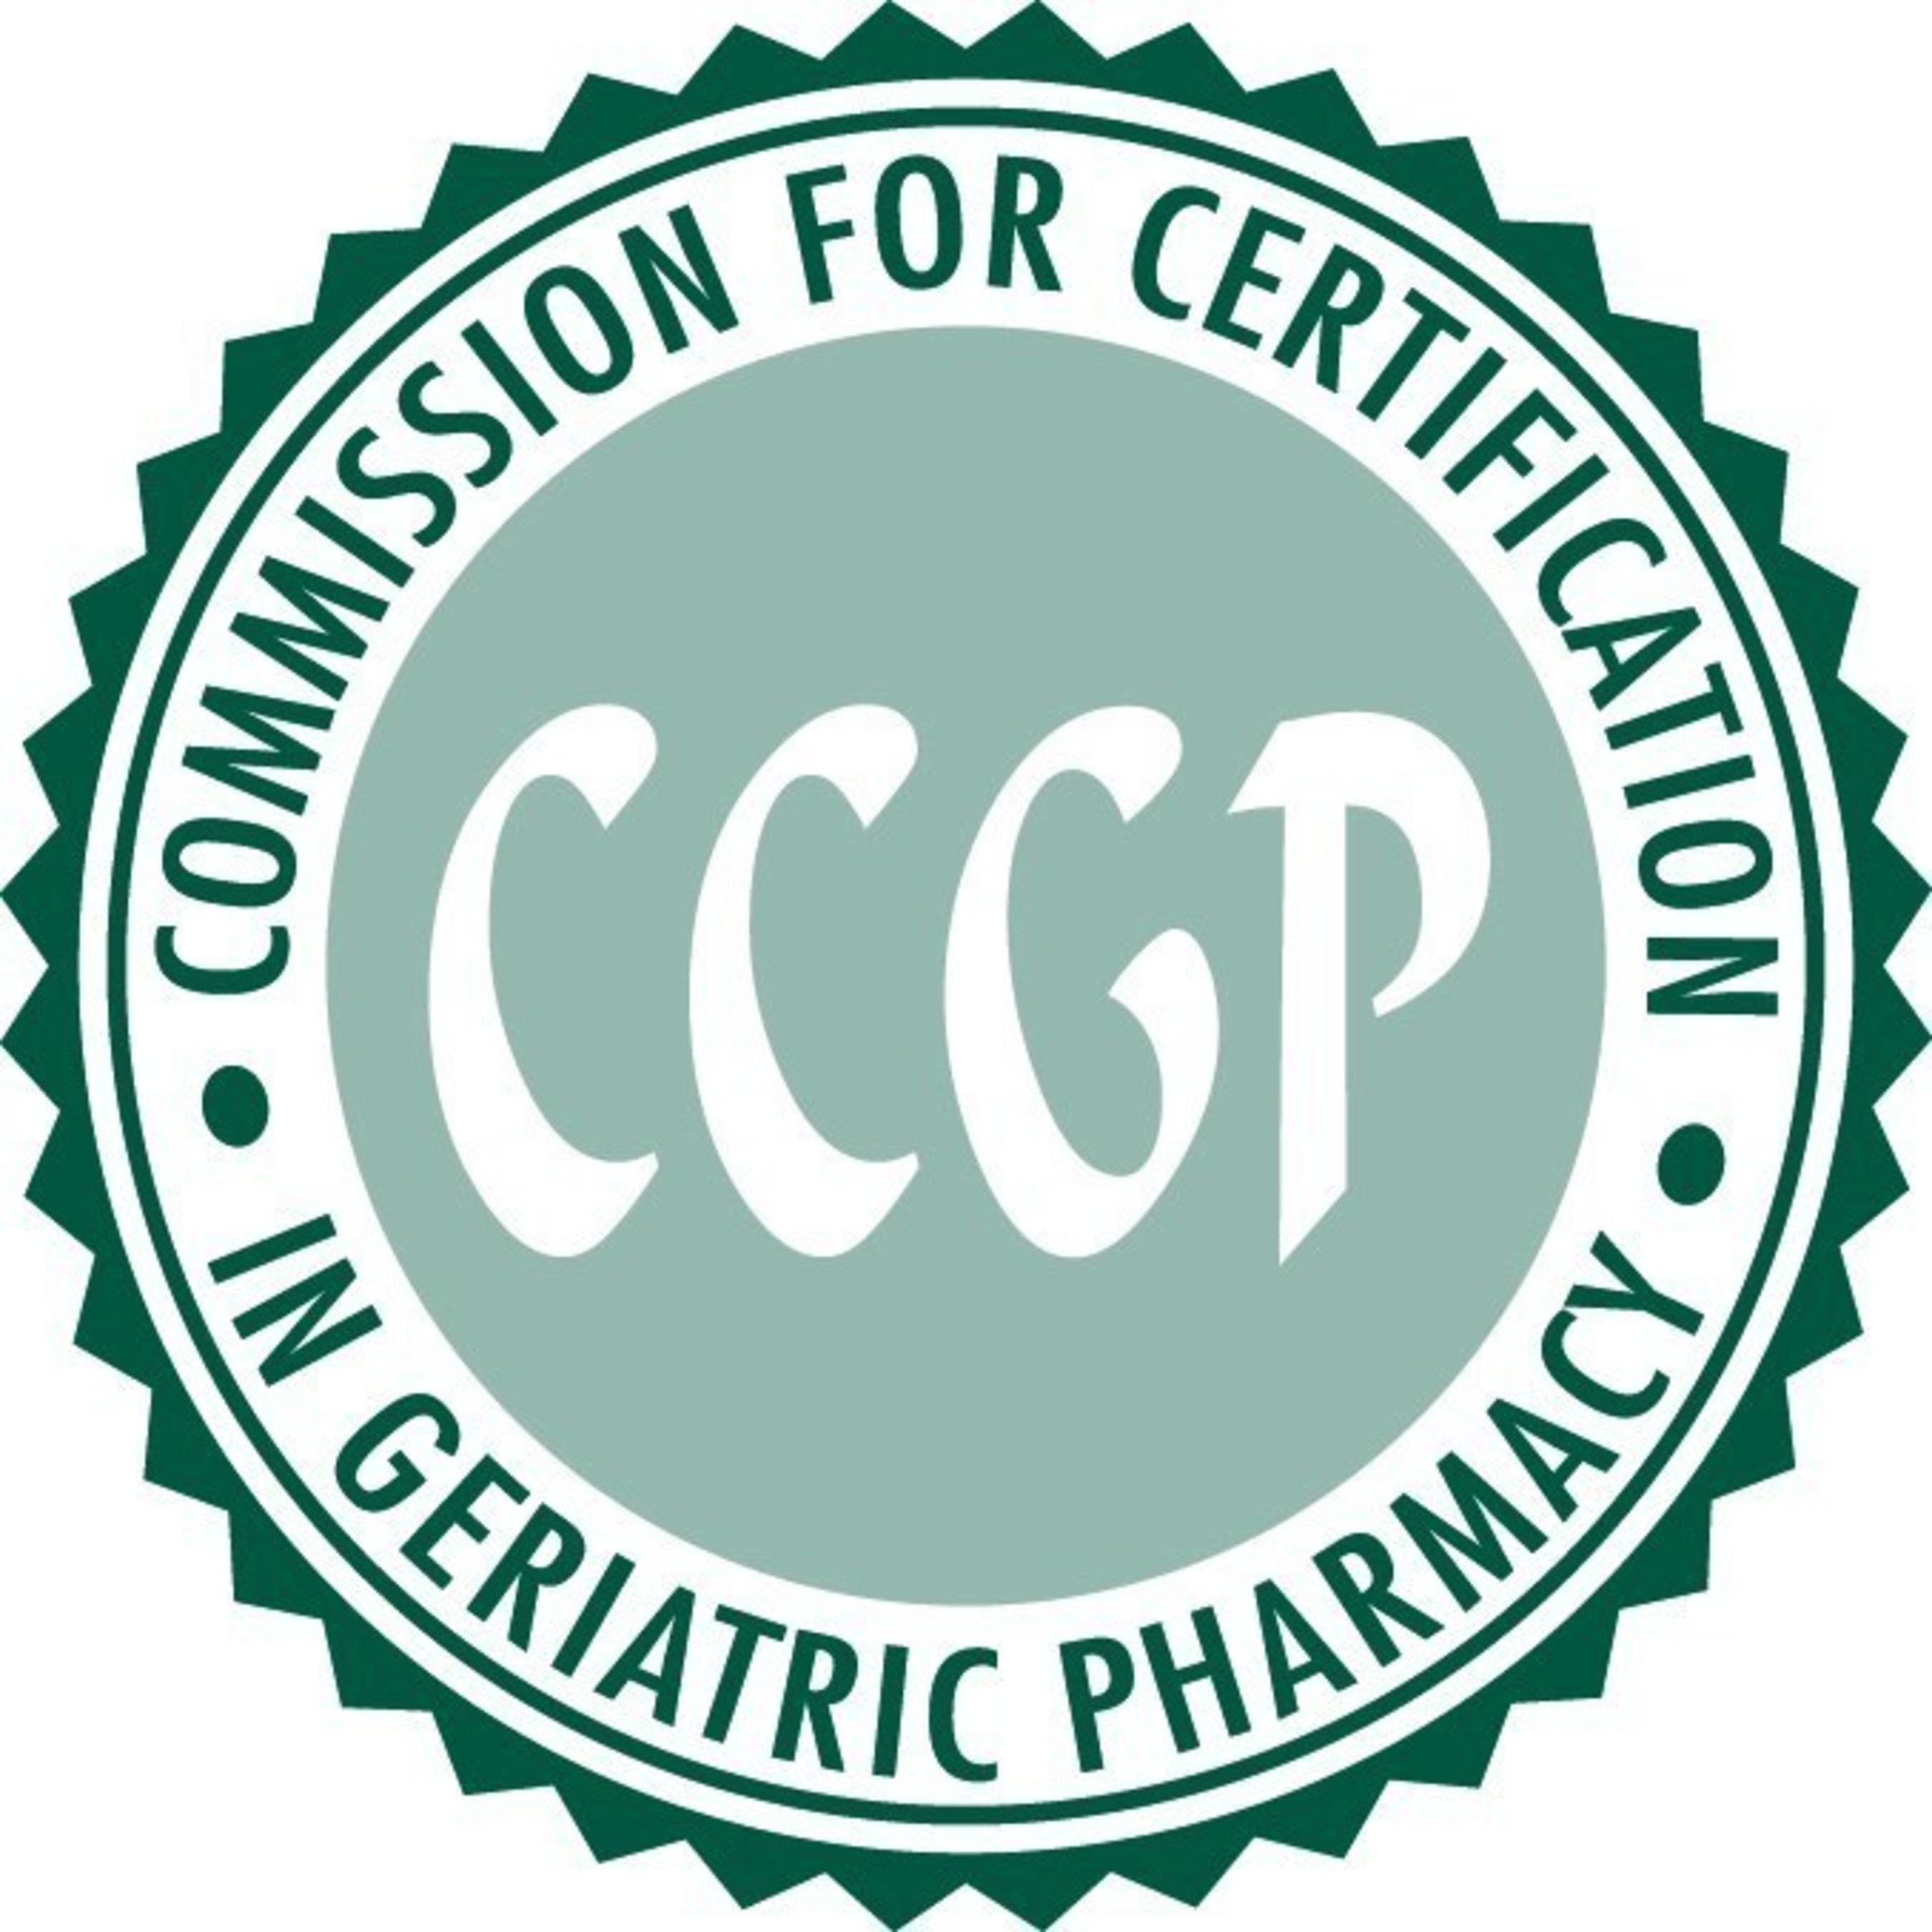 Commission for Certification in Geriatric Pharmacy